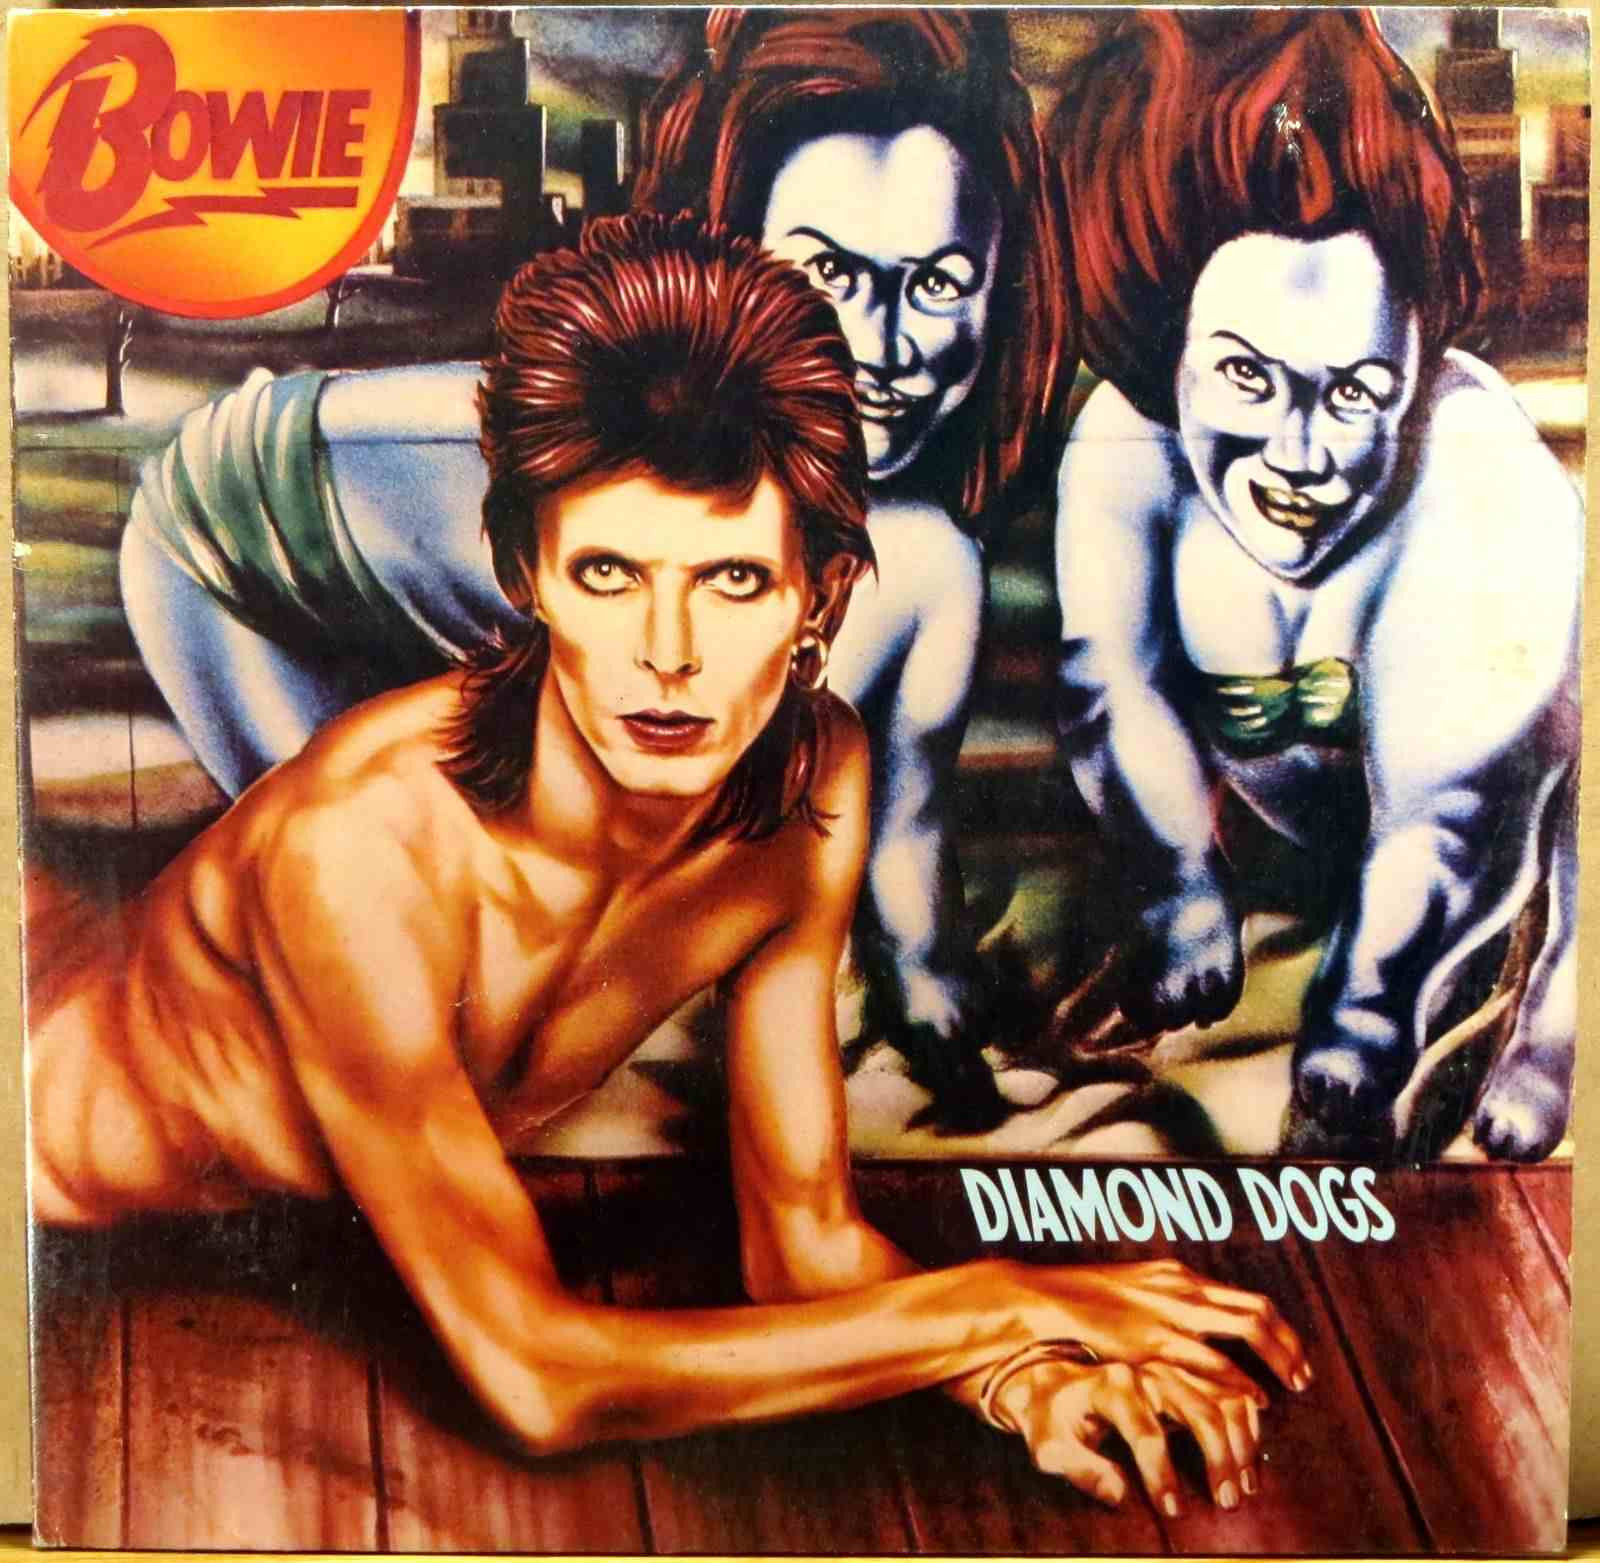 Diamond Dogs by David Bowie Album Cover